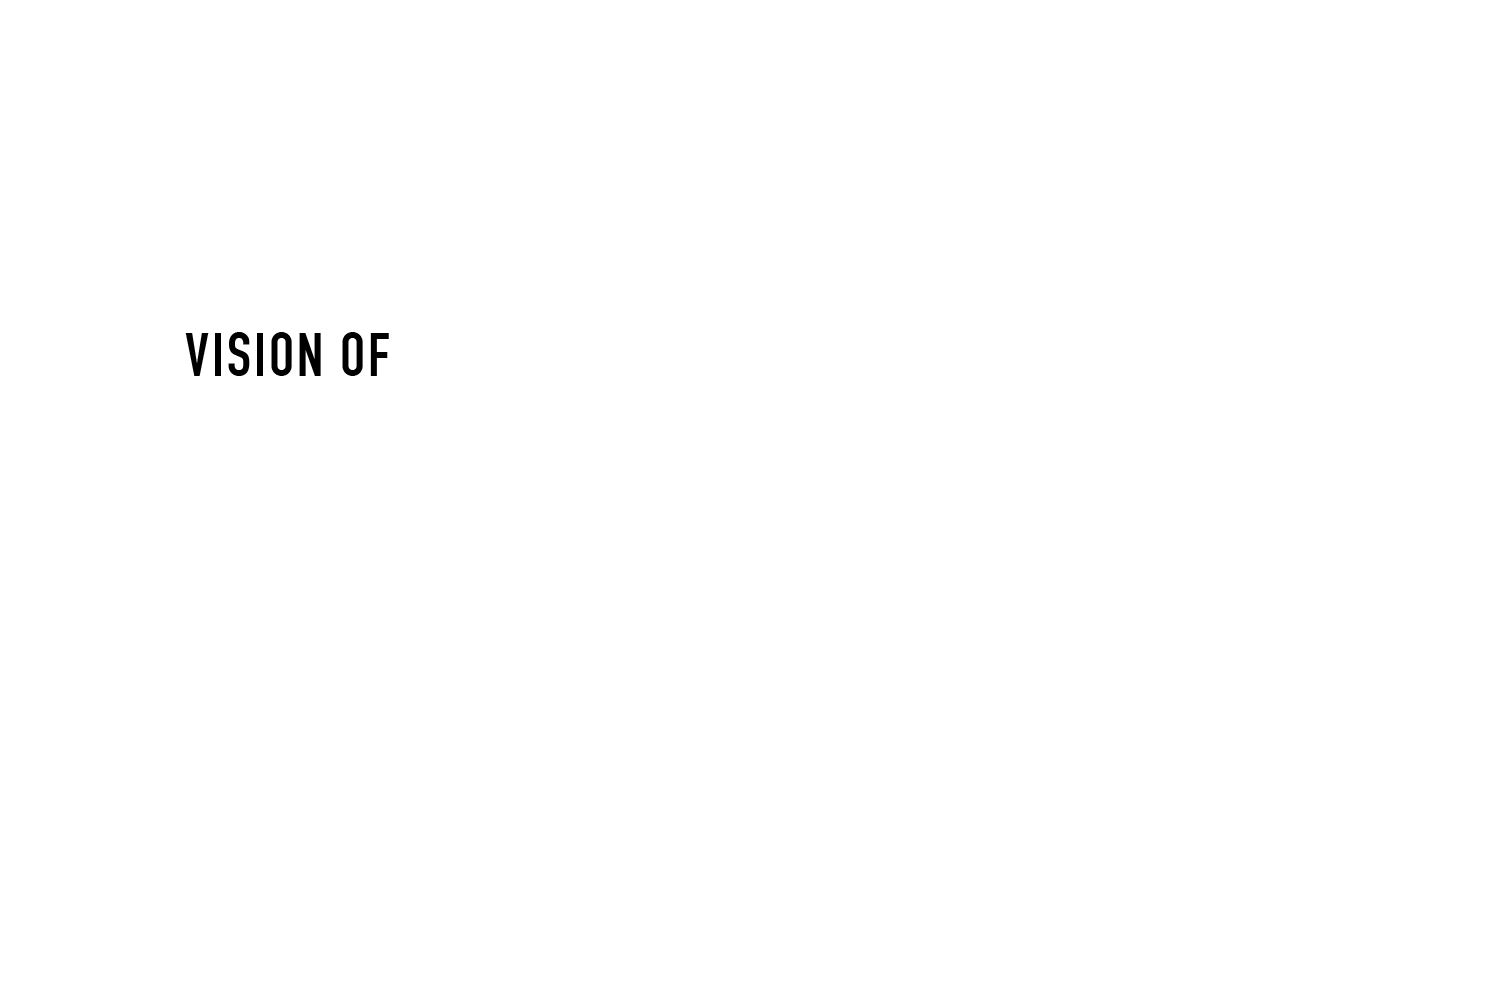 The Policy of Master Lights